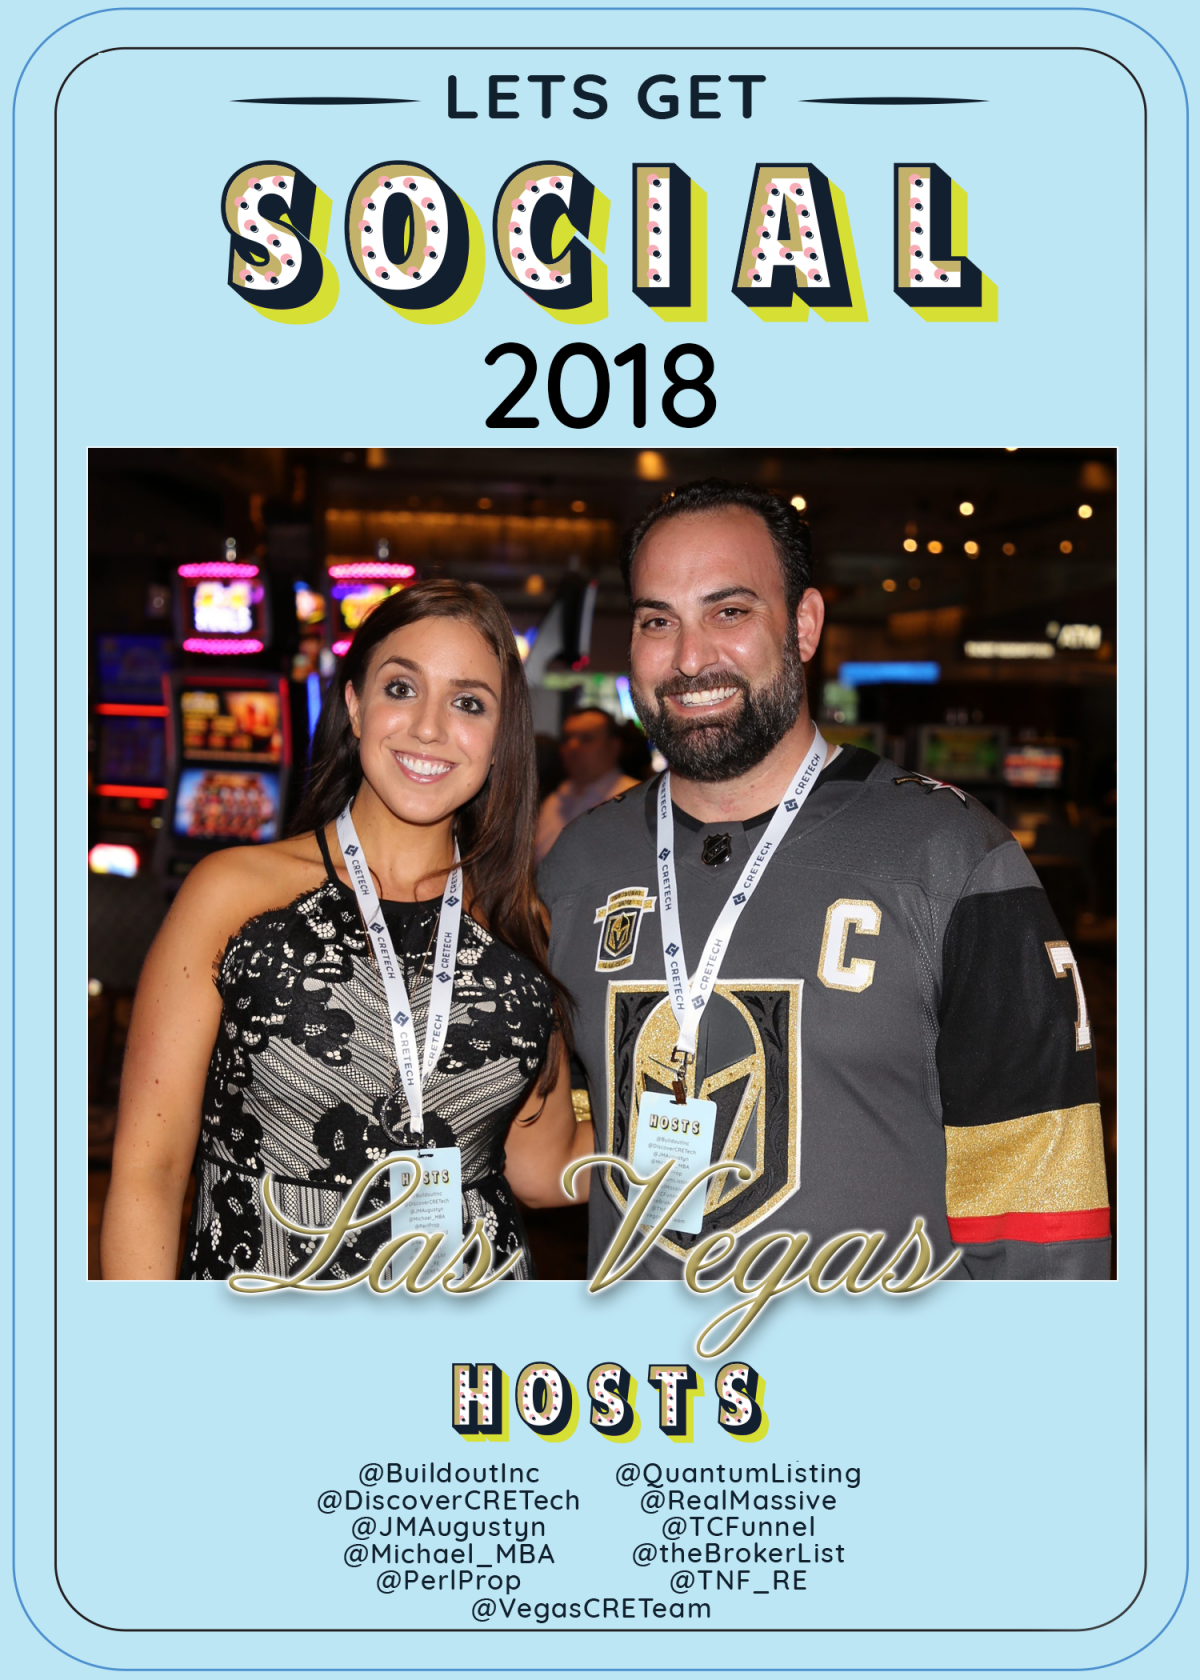 Vegas CRE Team Natalie Wainwright and Dan Palmeri